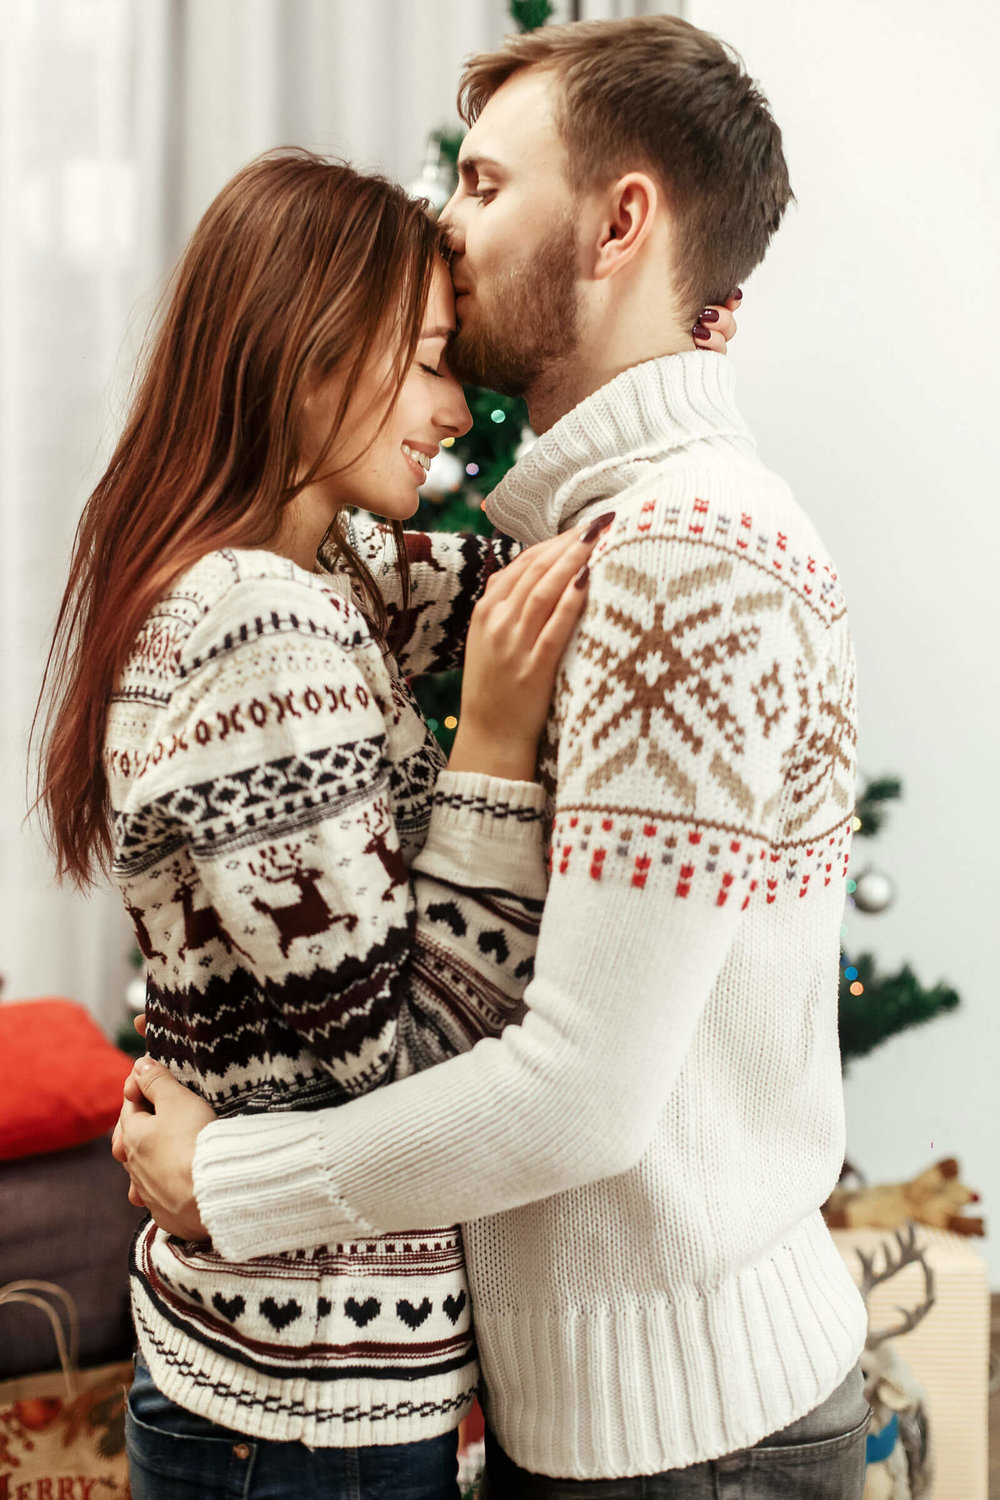 Winter-Engagement-Photos-Outfitting-for-the-Occasion-Toledo-Wedding-Guide-3.jpg